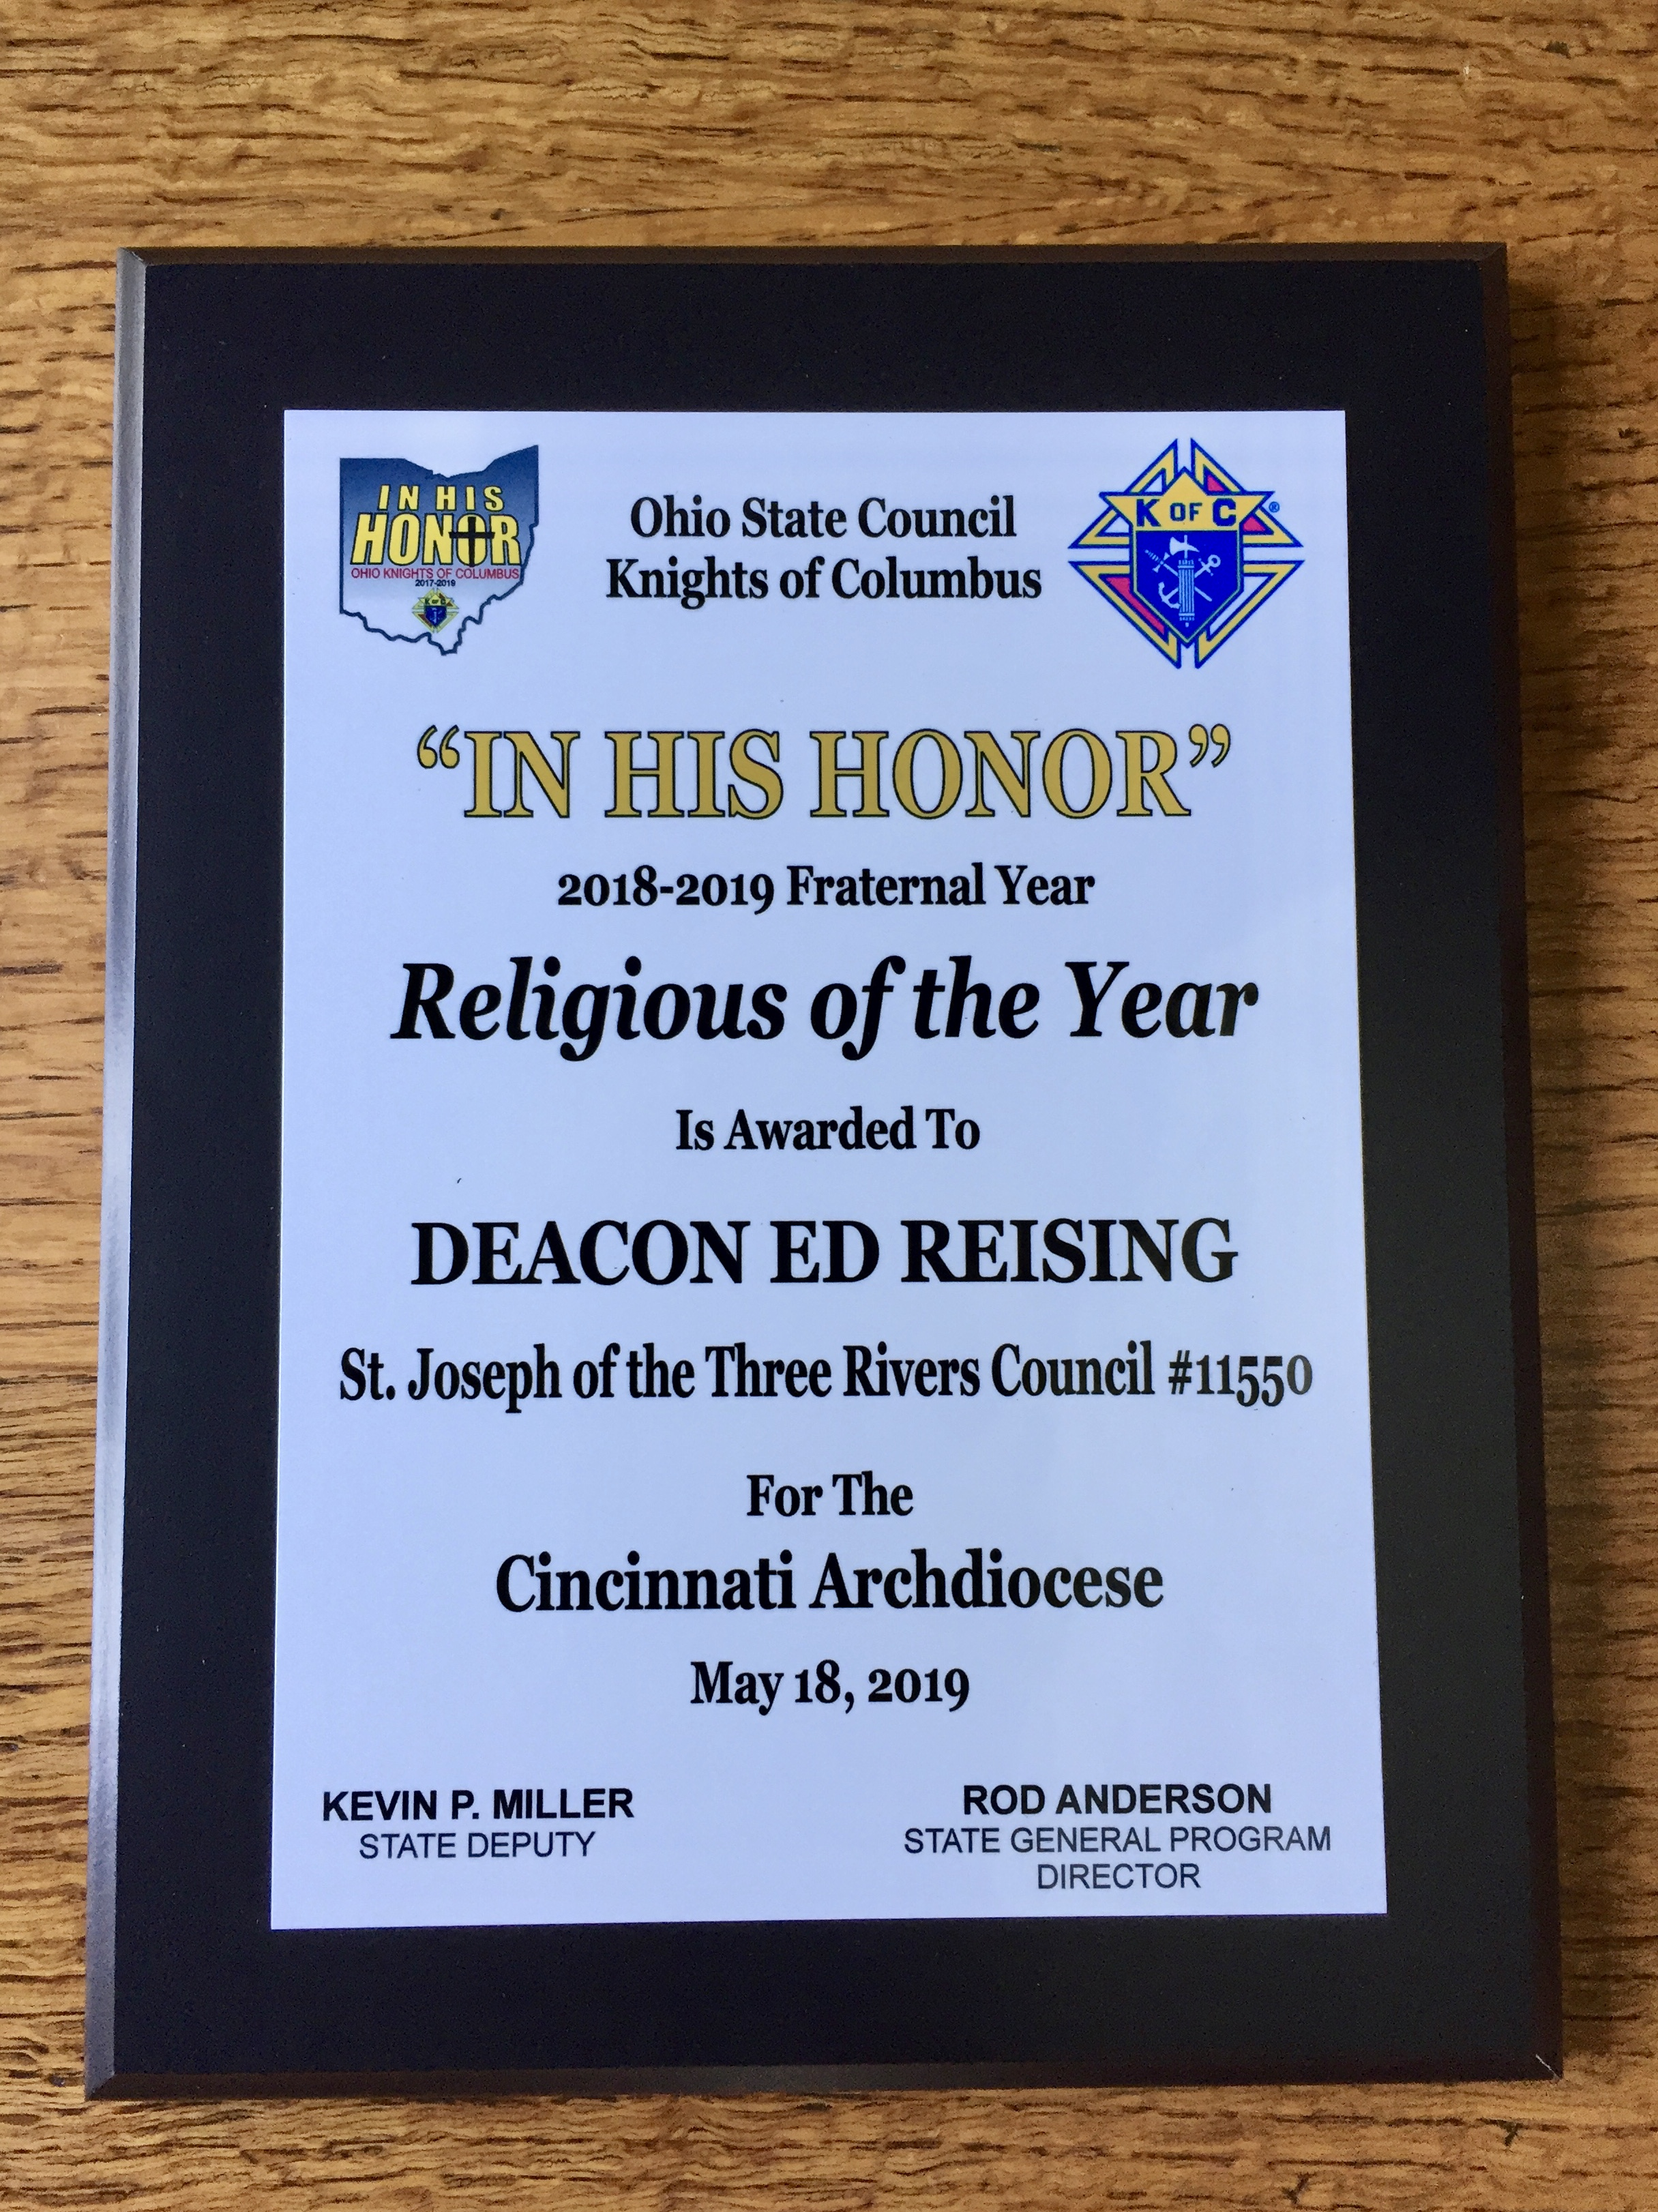 Religious of the Year - Deacon Ed Reising